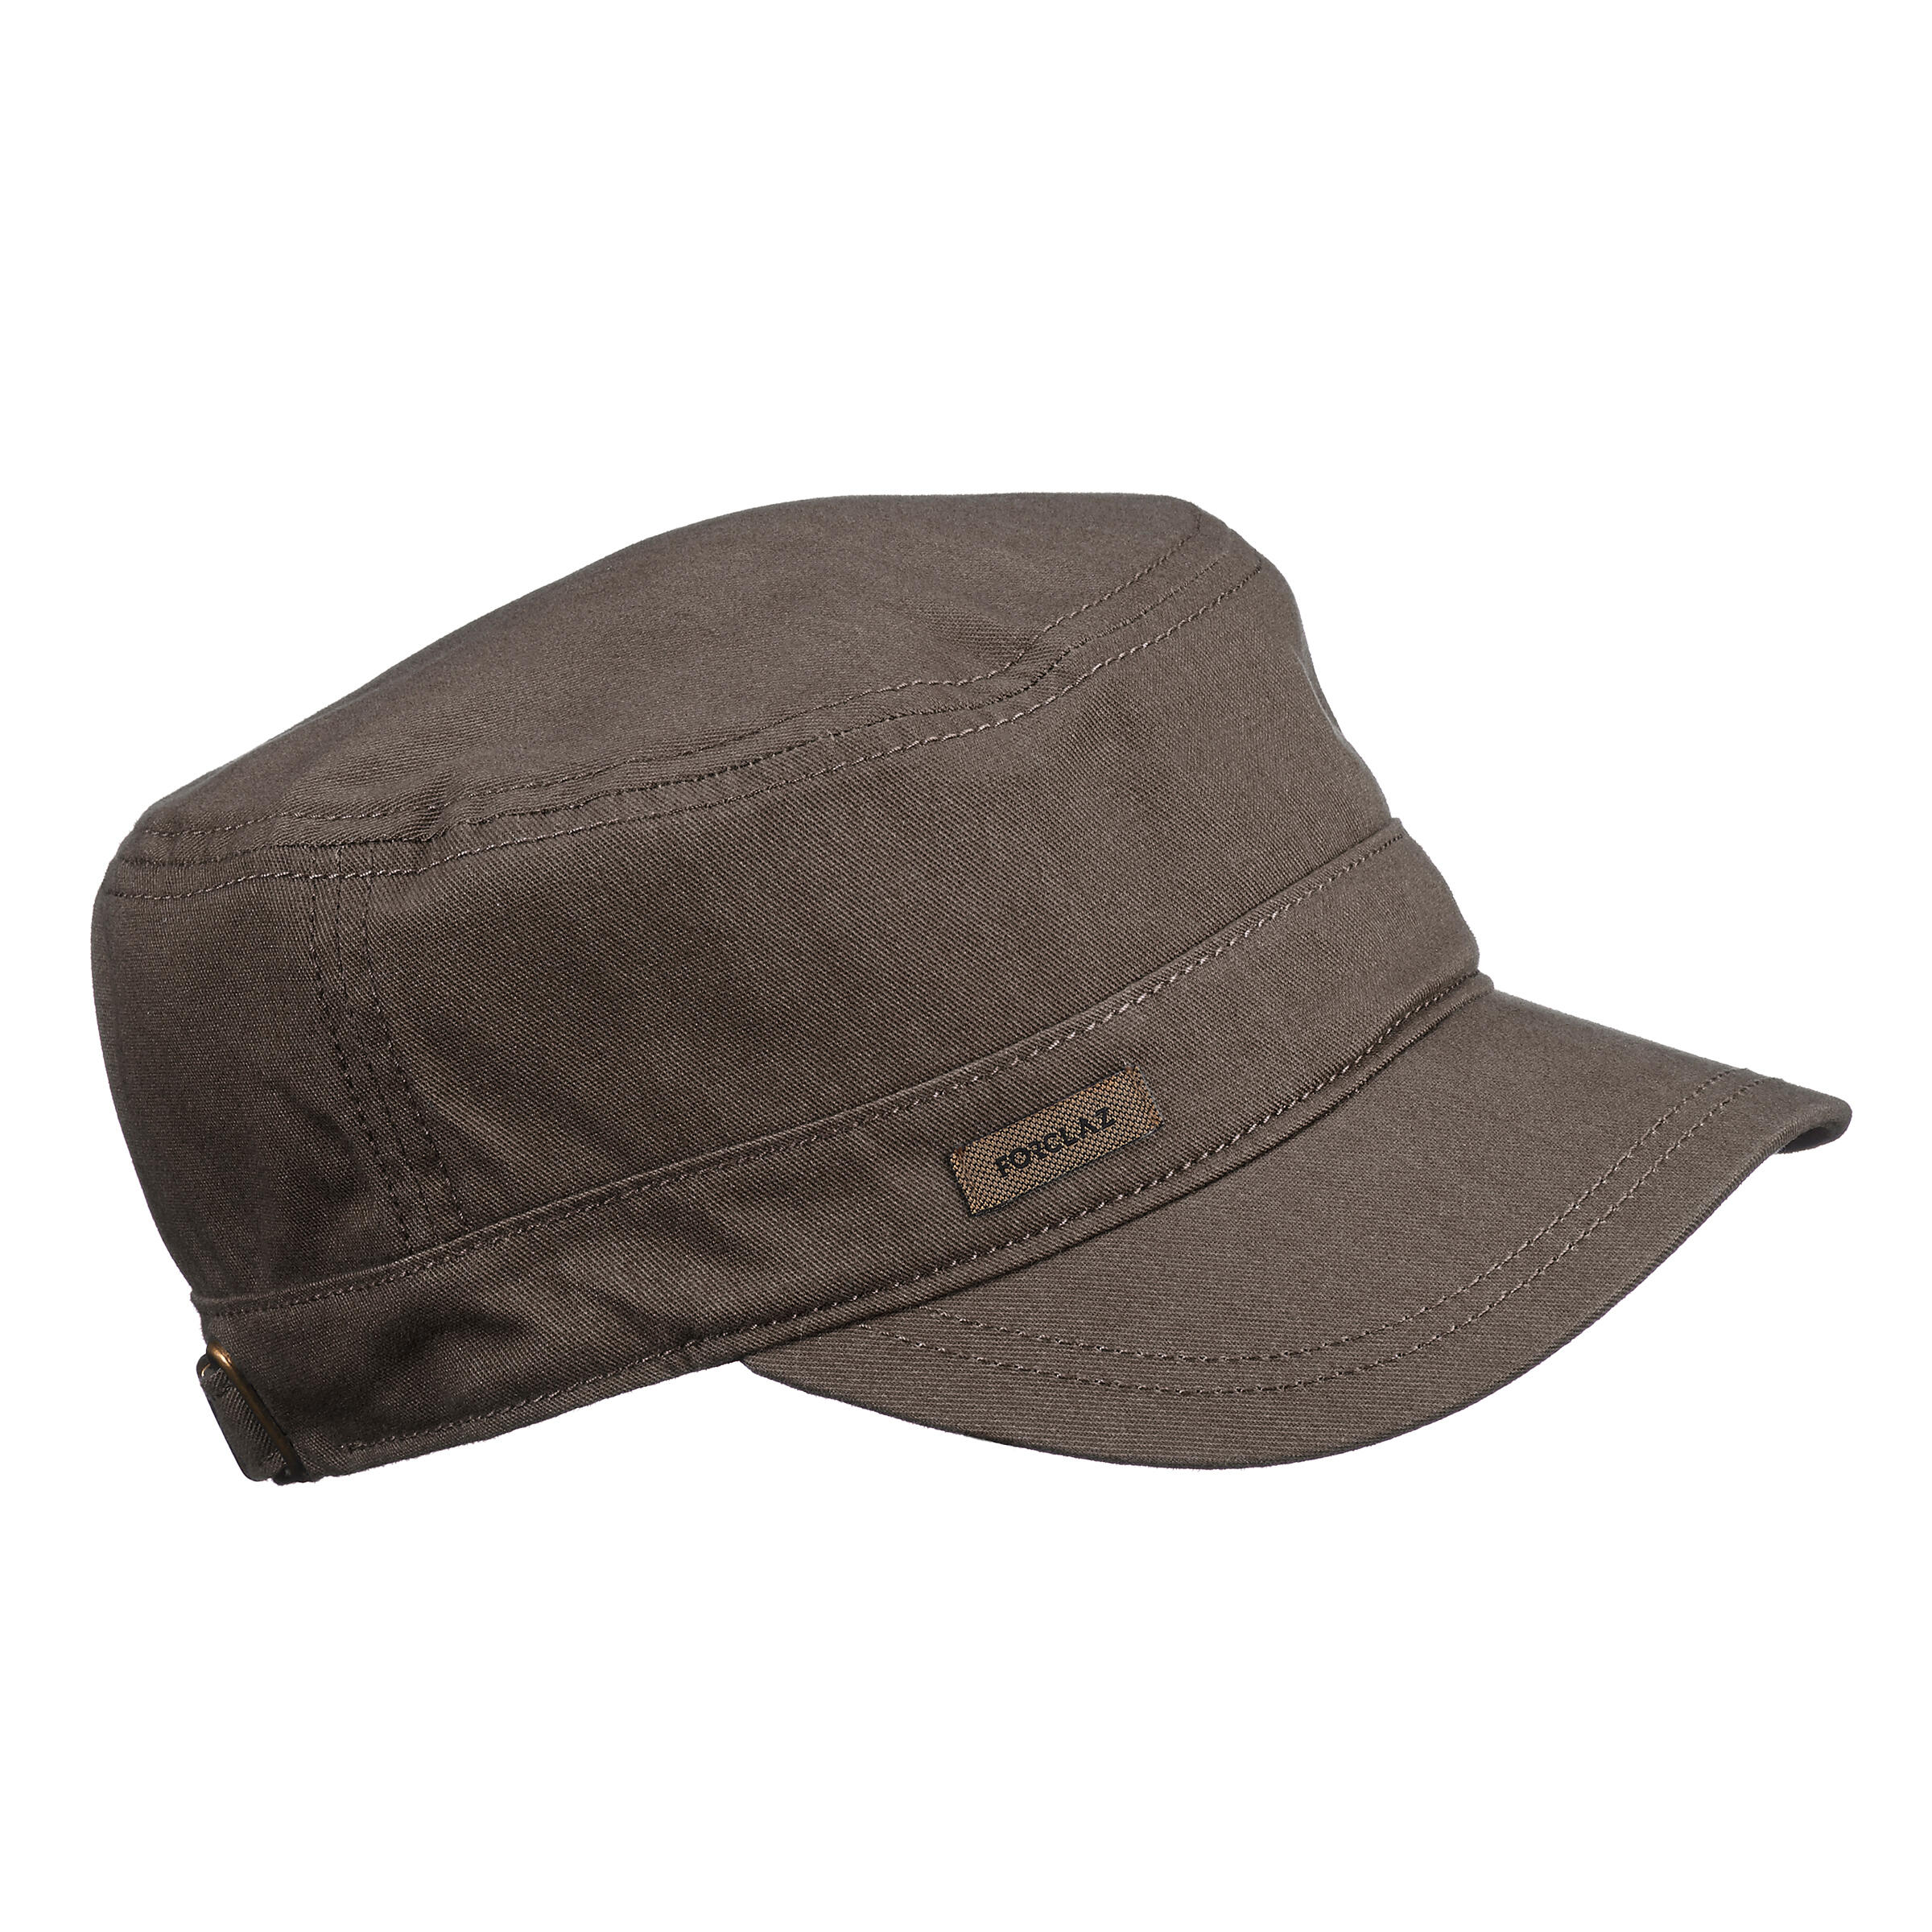 Hiking cap 500 Brown